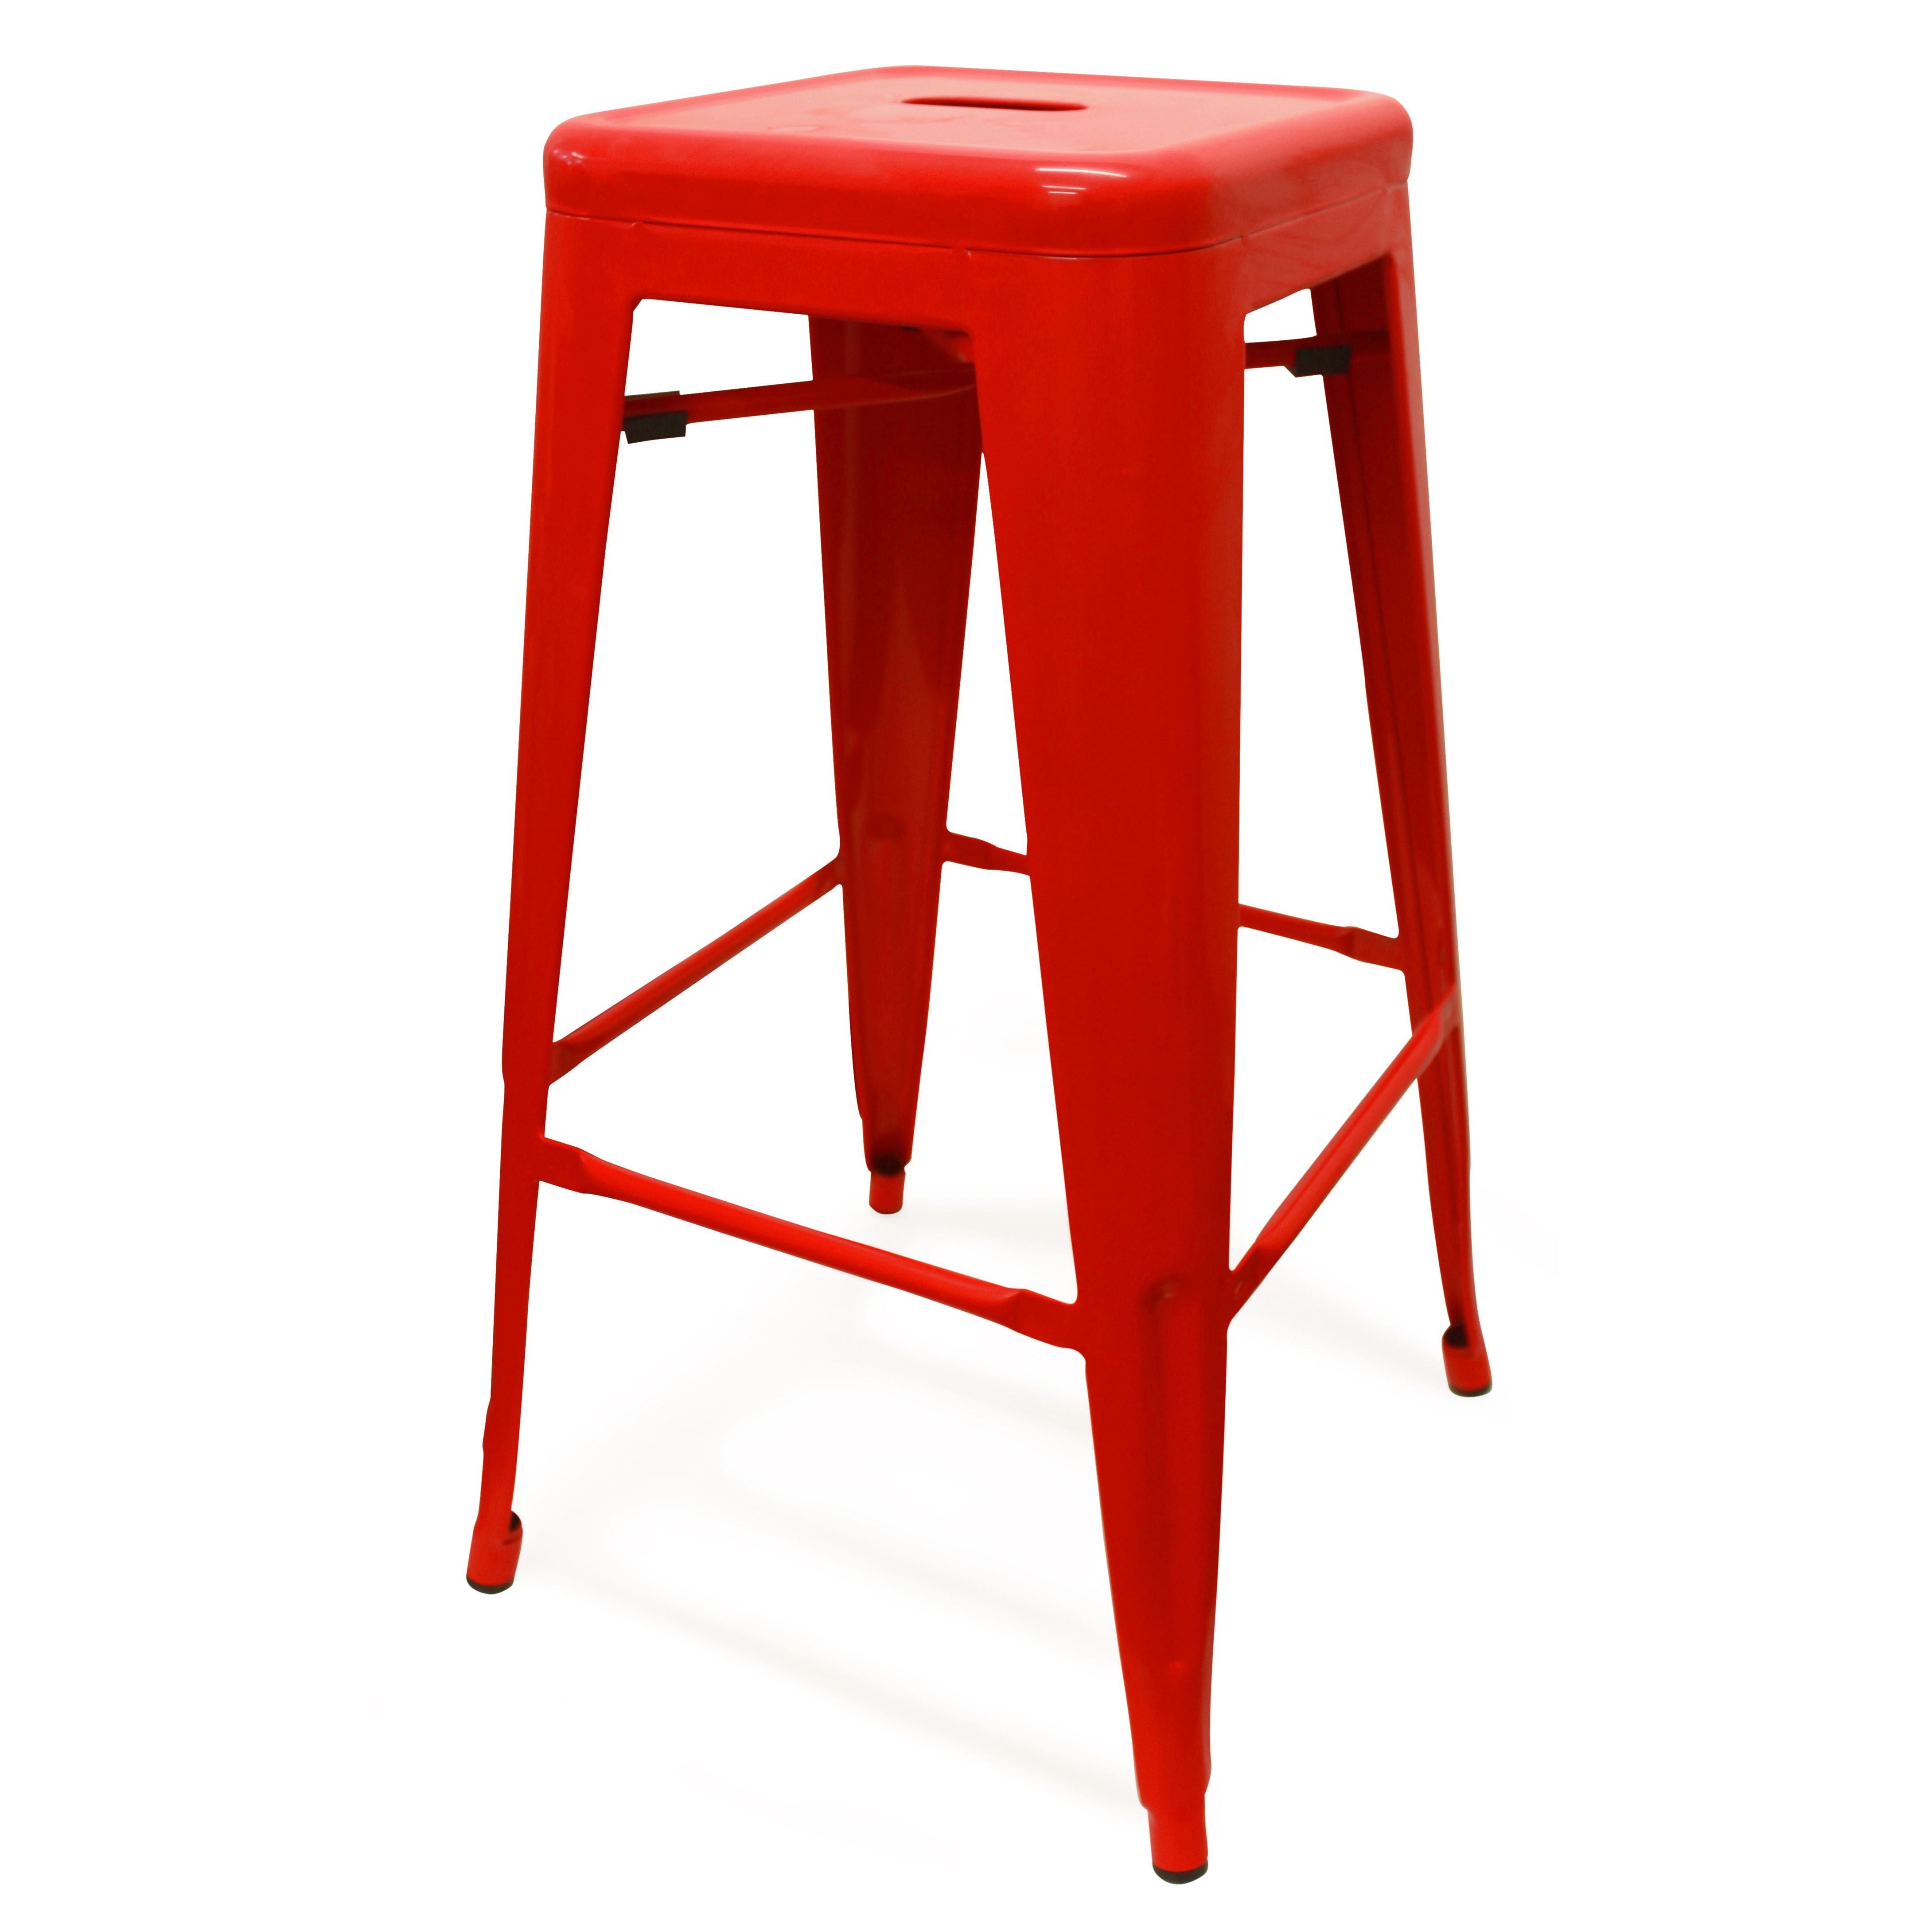 Set of 2 Oslo Bar Stools - Red